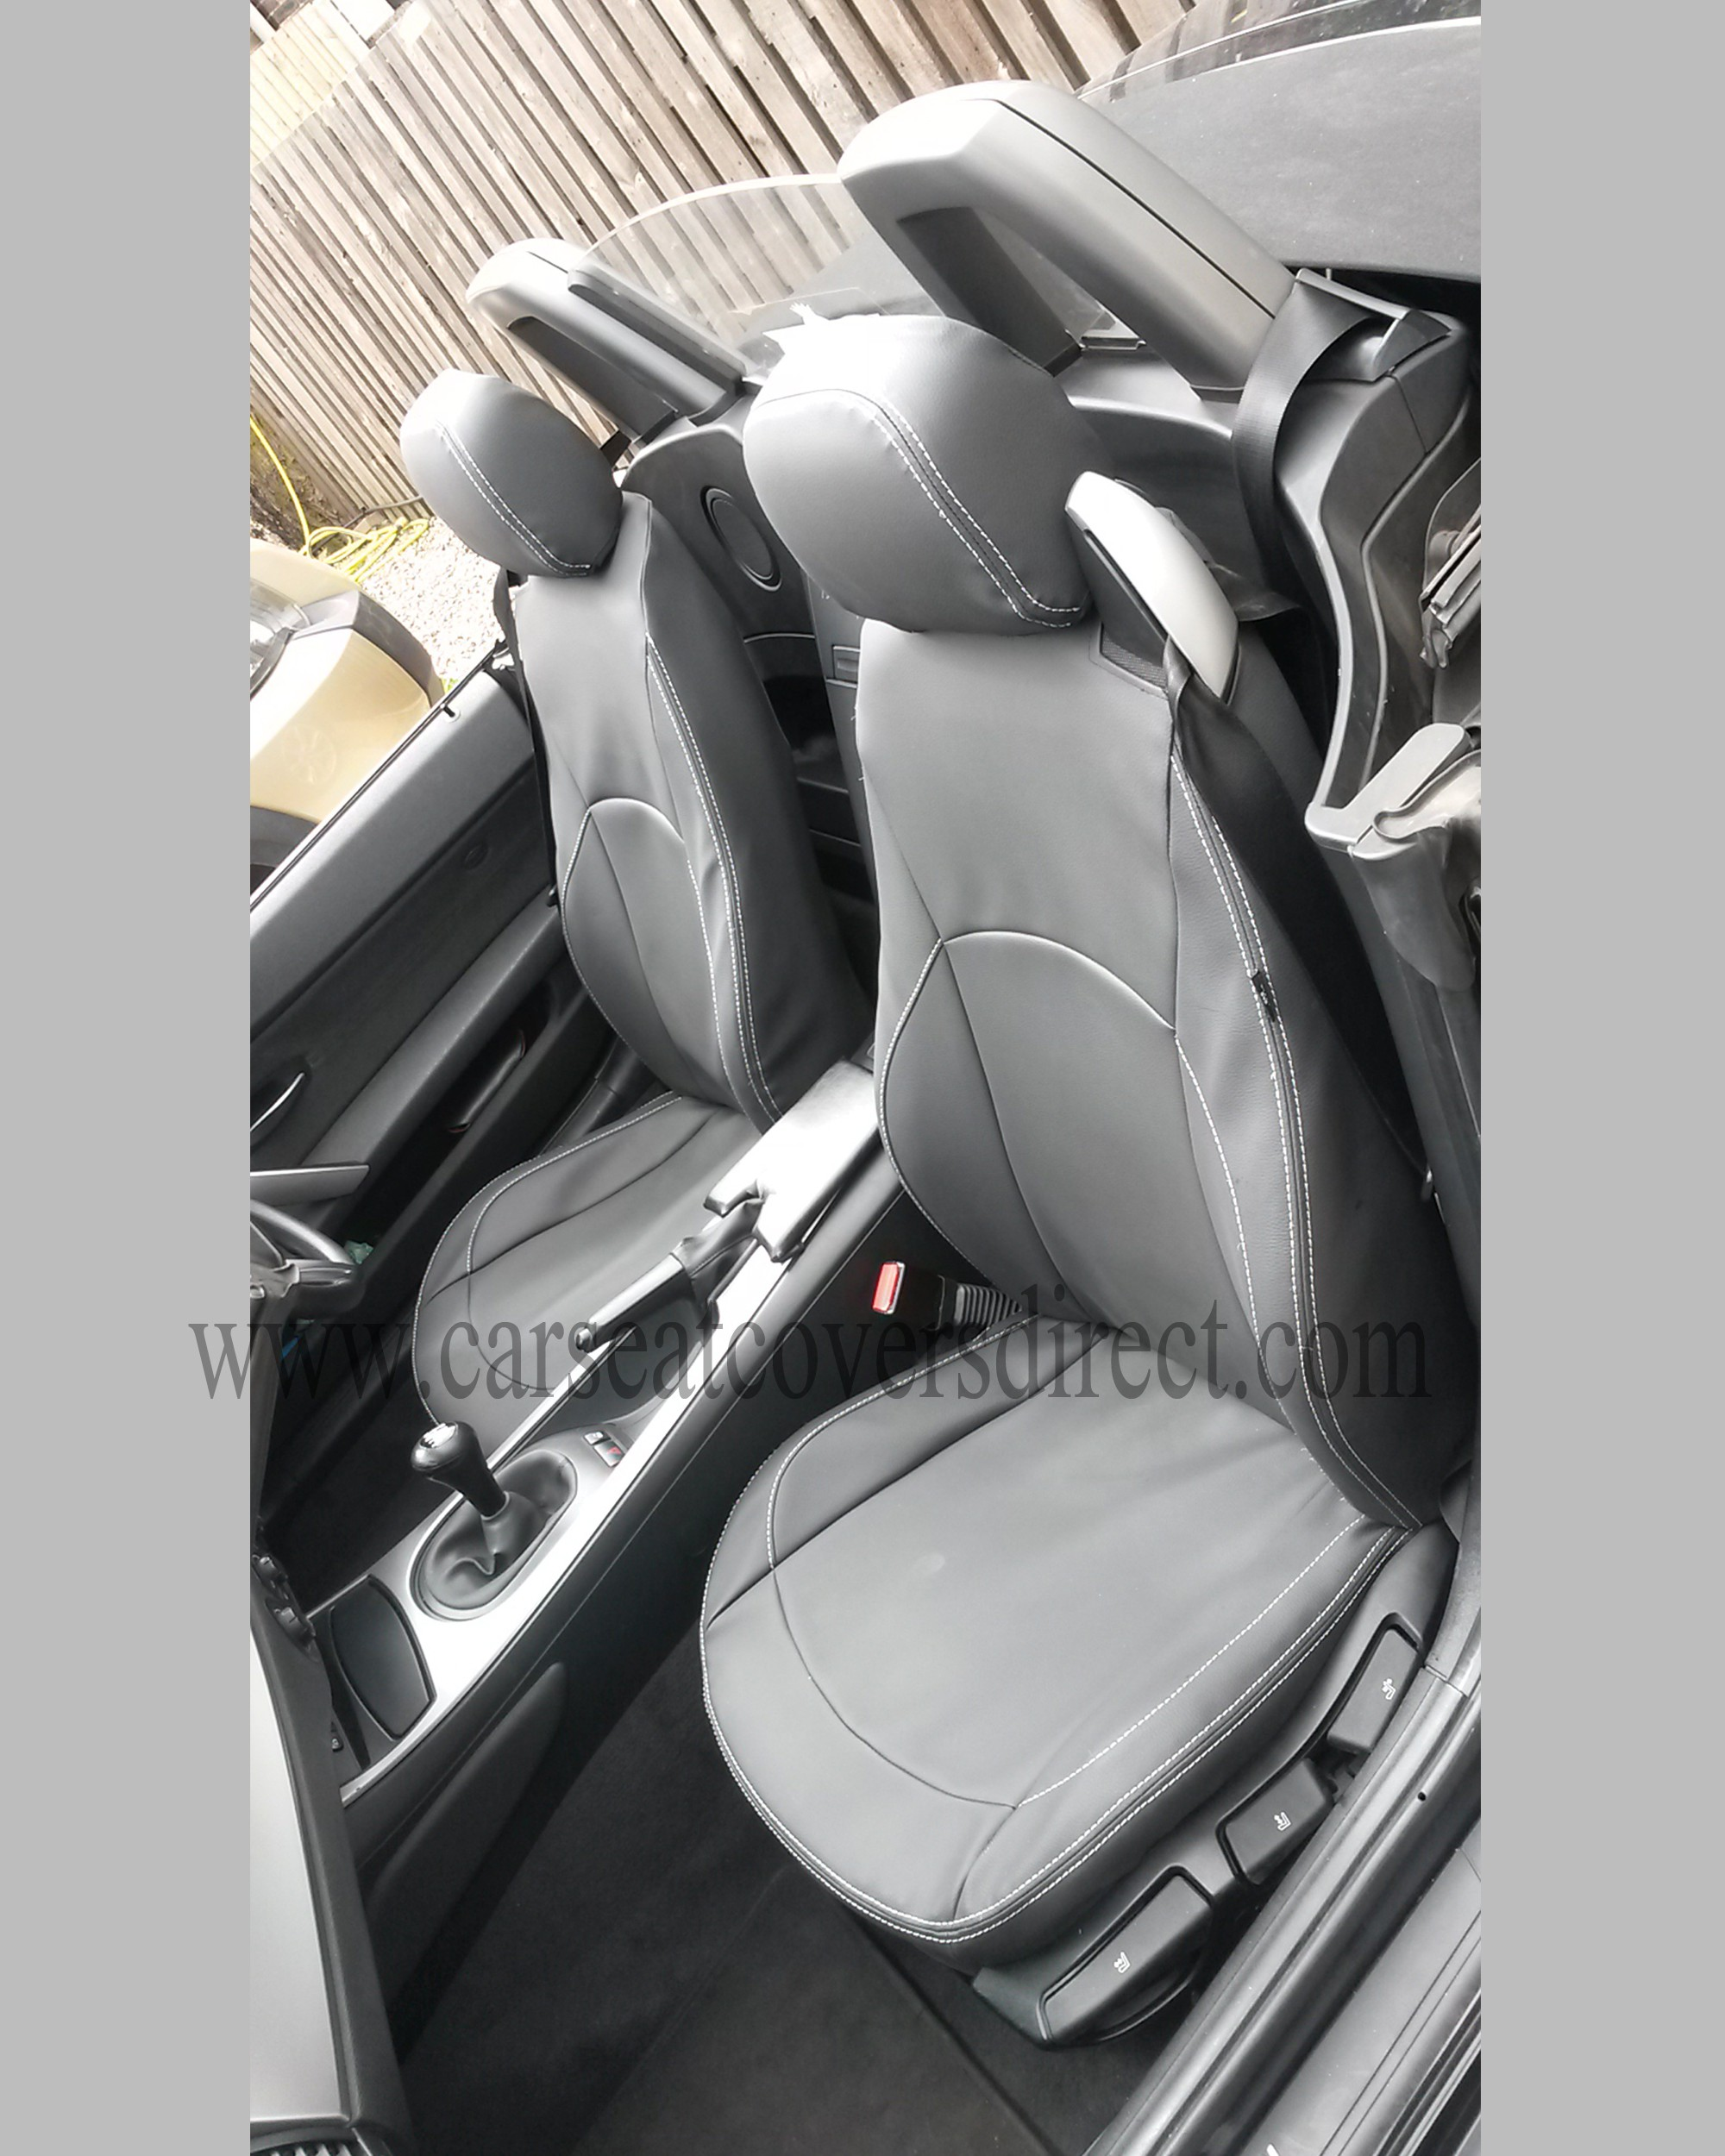 BMW Z4 E85 seat covers